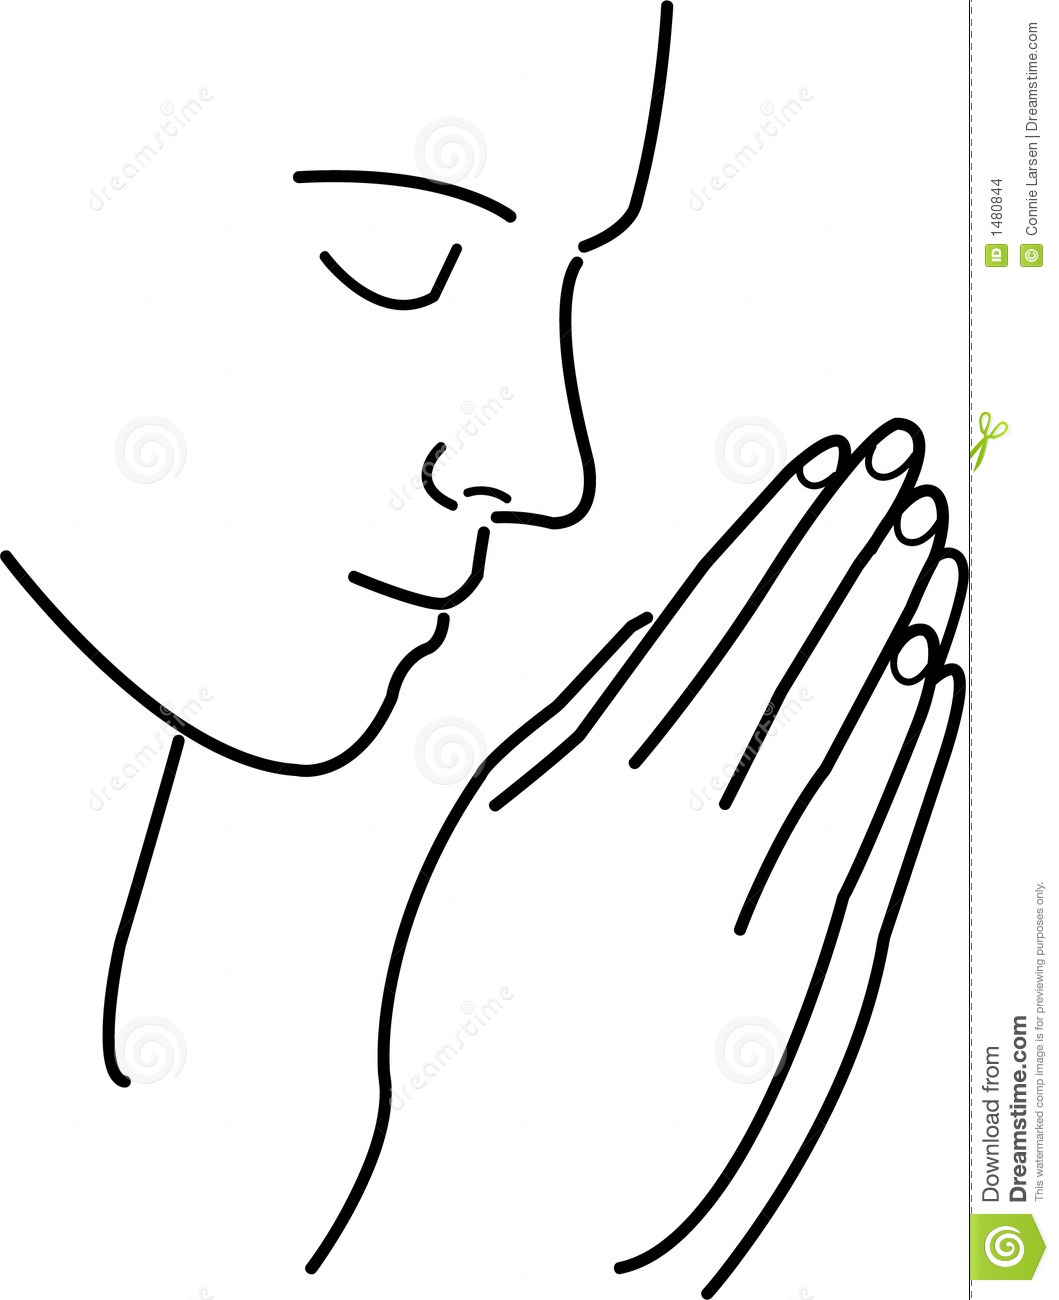 Prayer And Meditation Stock Images